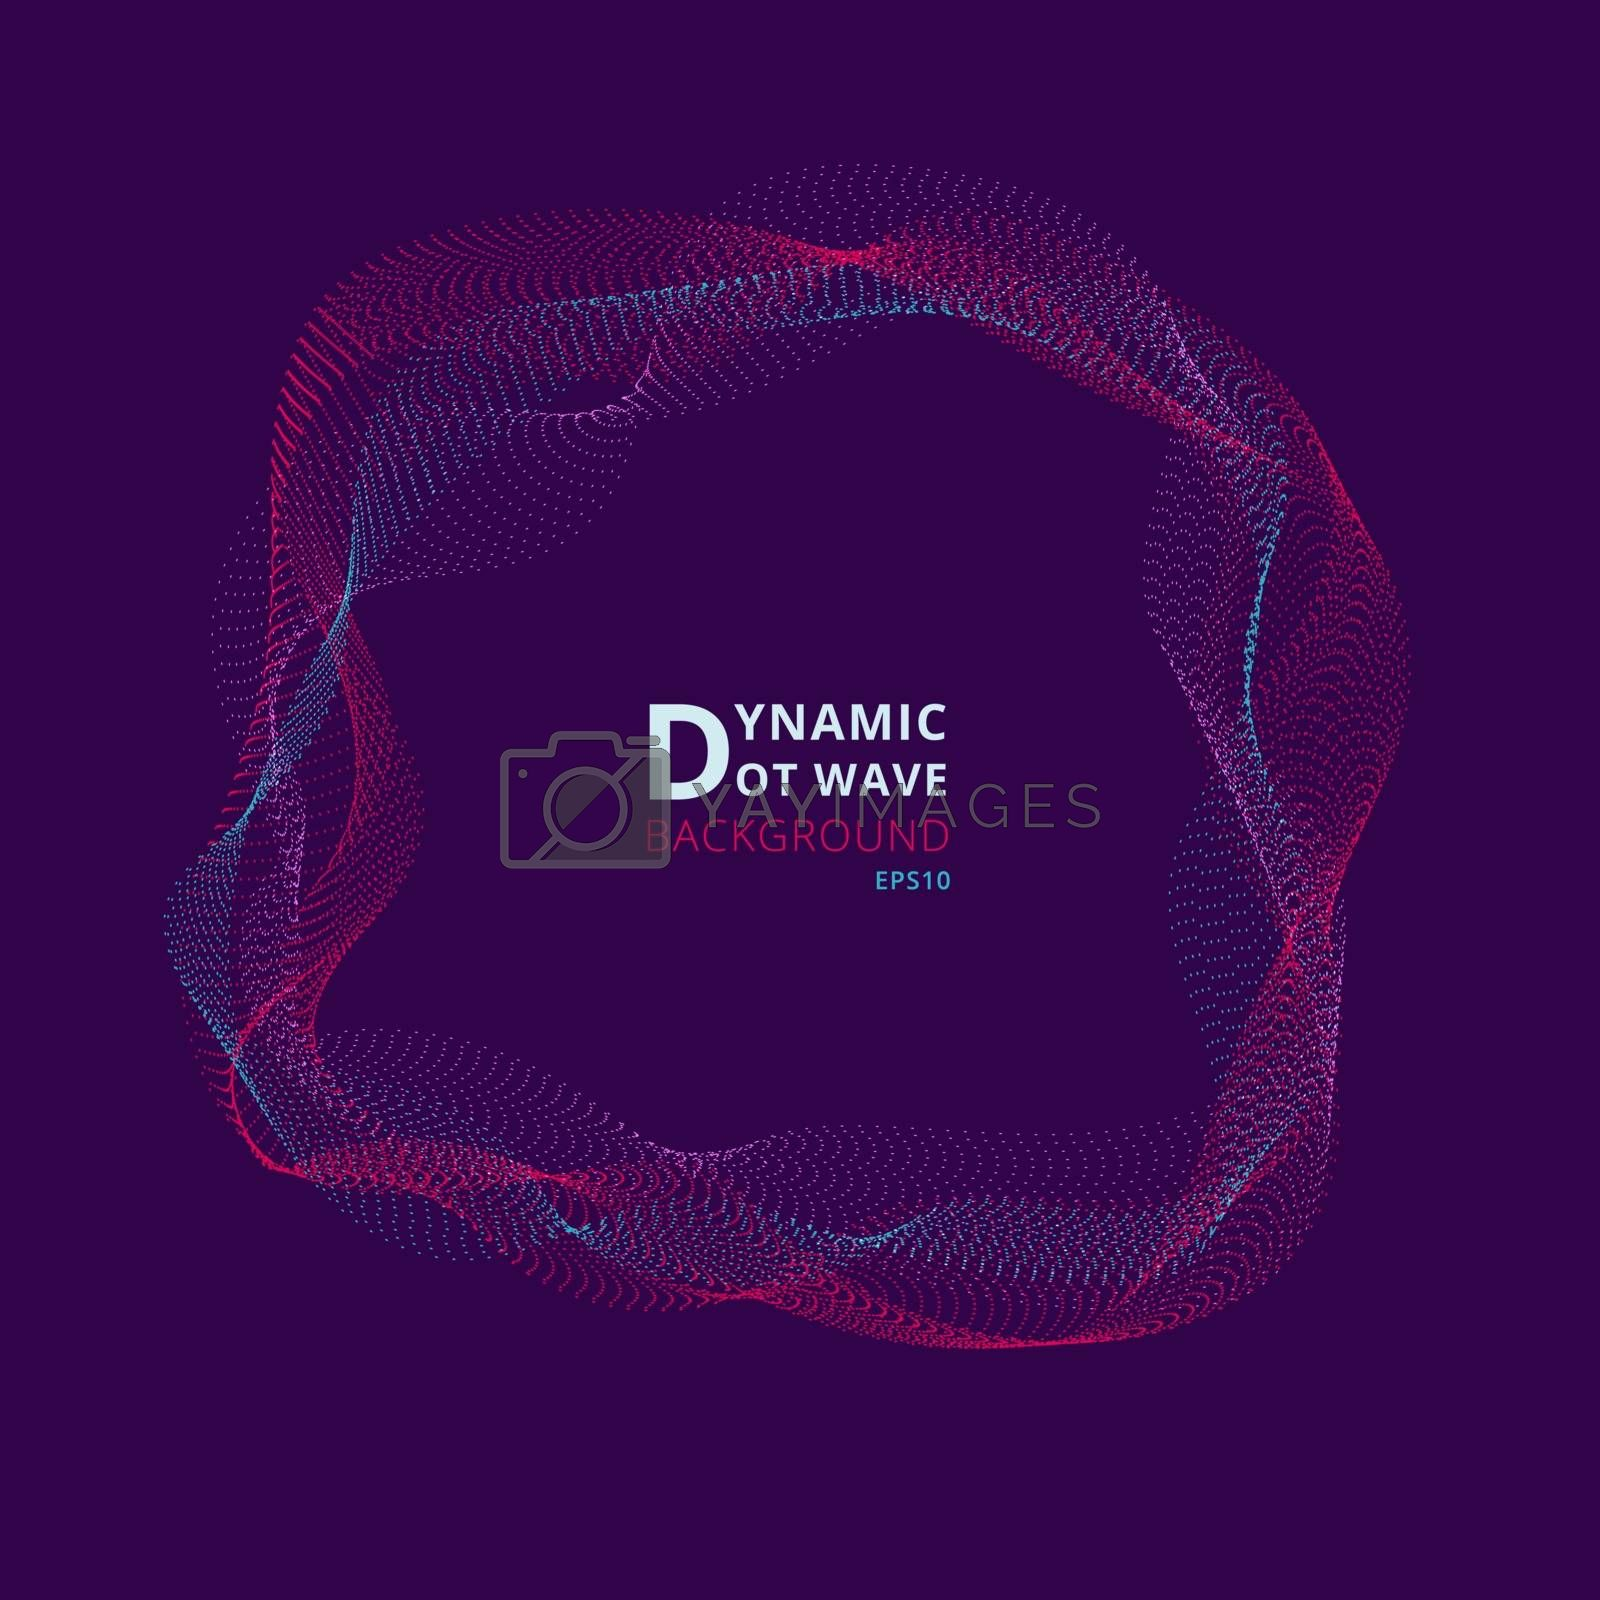 Abstract dynamic round frame particles waves on purple background. Big data visualization concept. Vector illustration